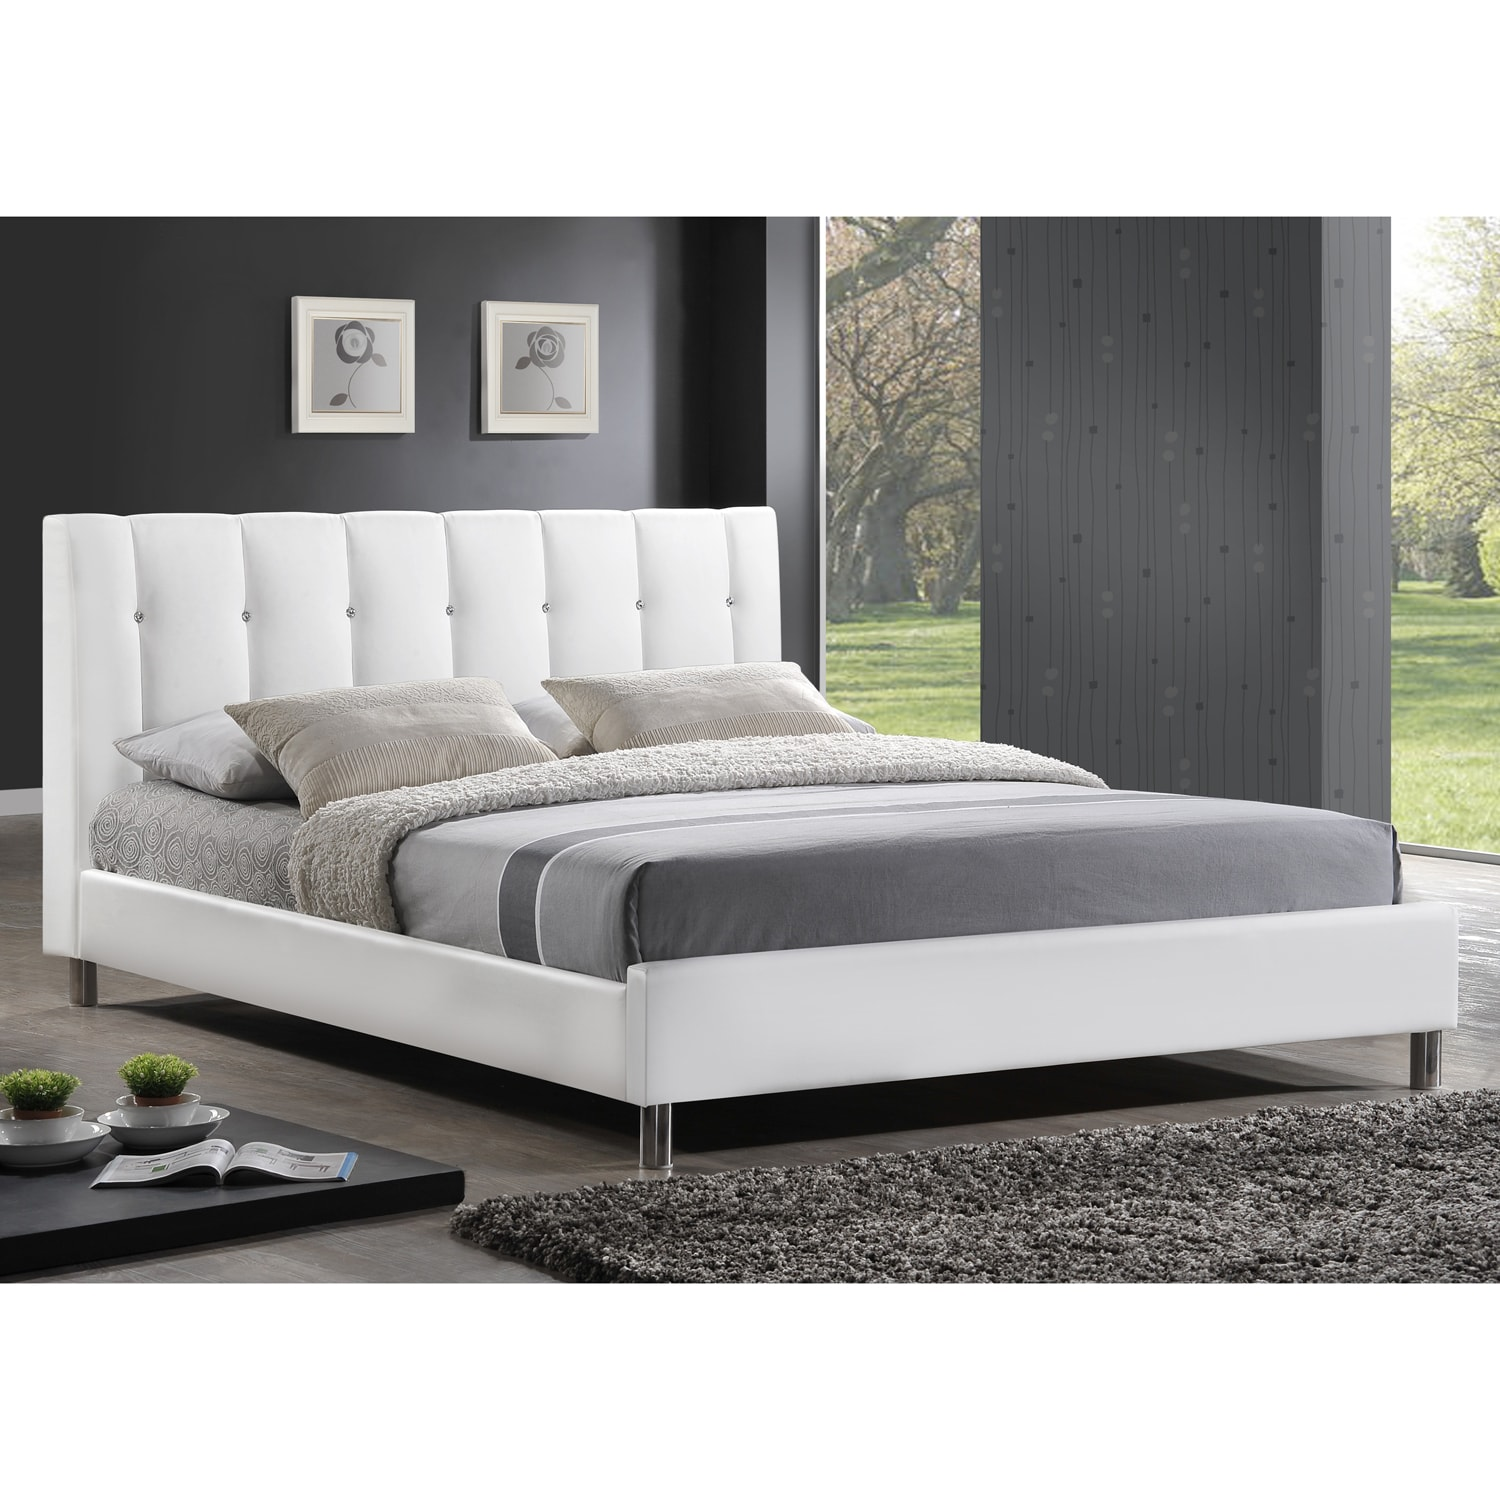 baxton studio vino modern upholstered full size bed headboard overstock shopping great. Black Bedroom Furniture Sets. Home Design Ideas